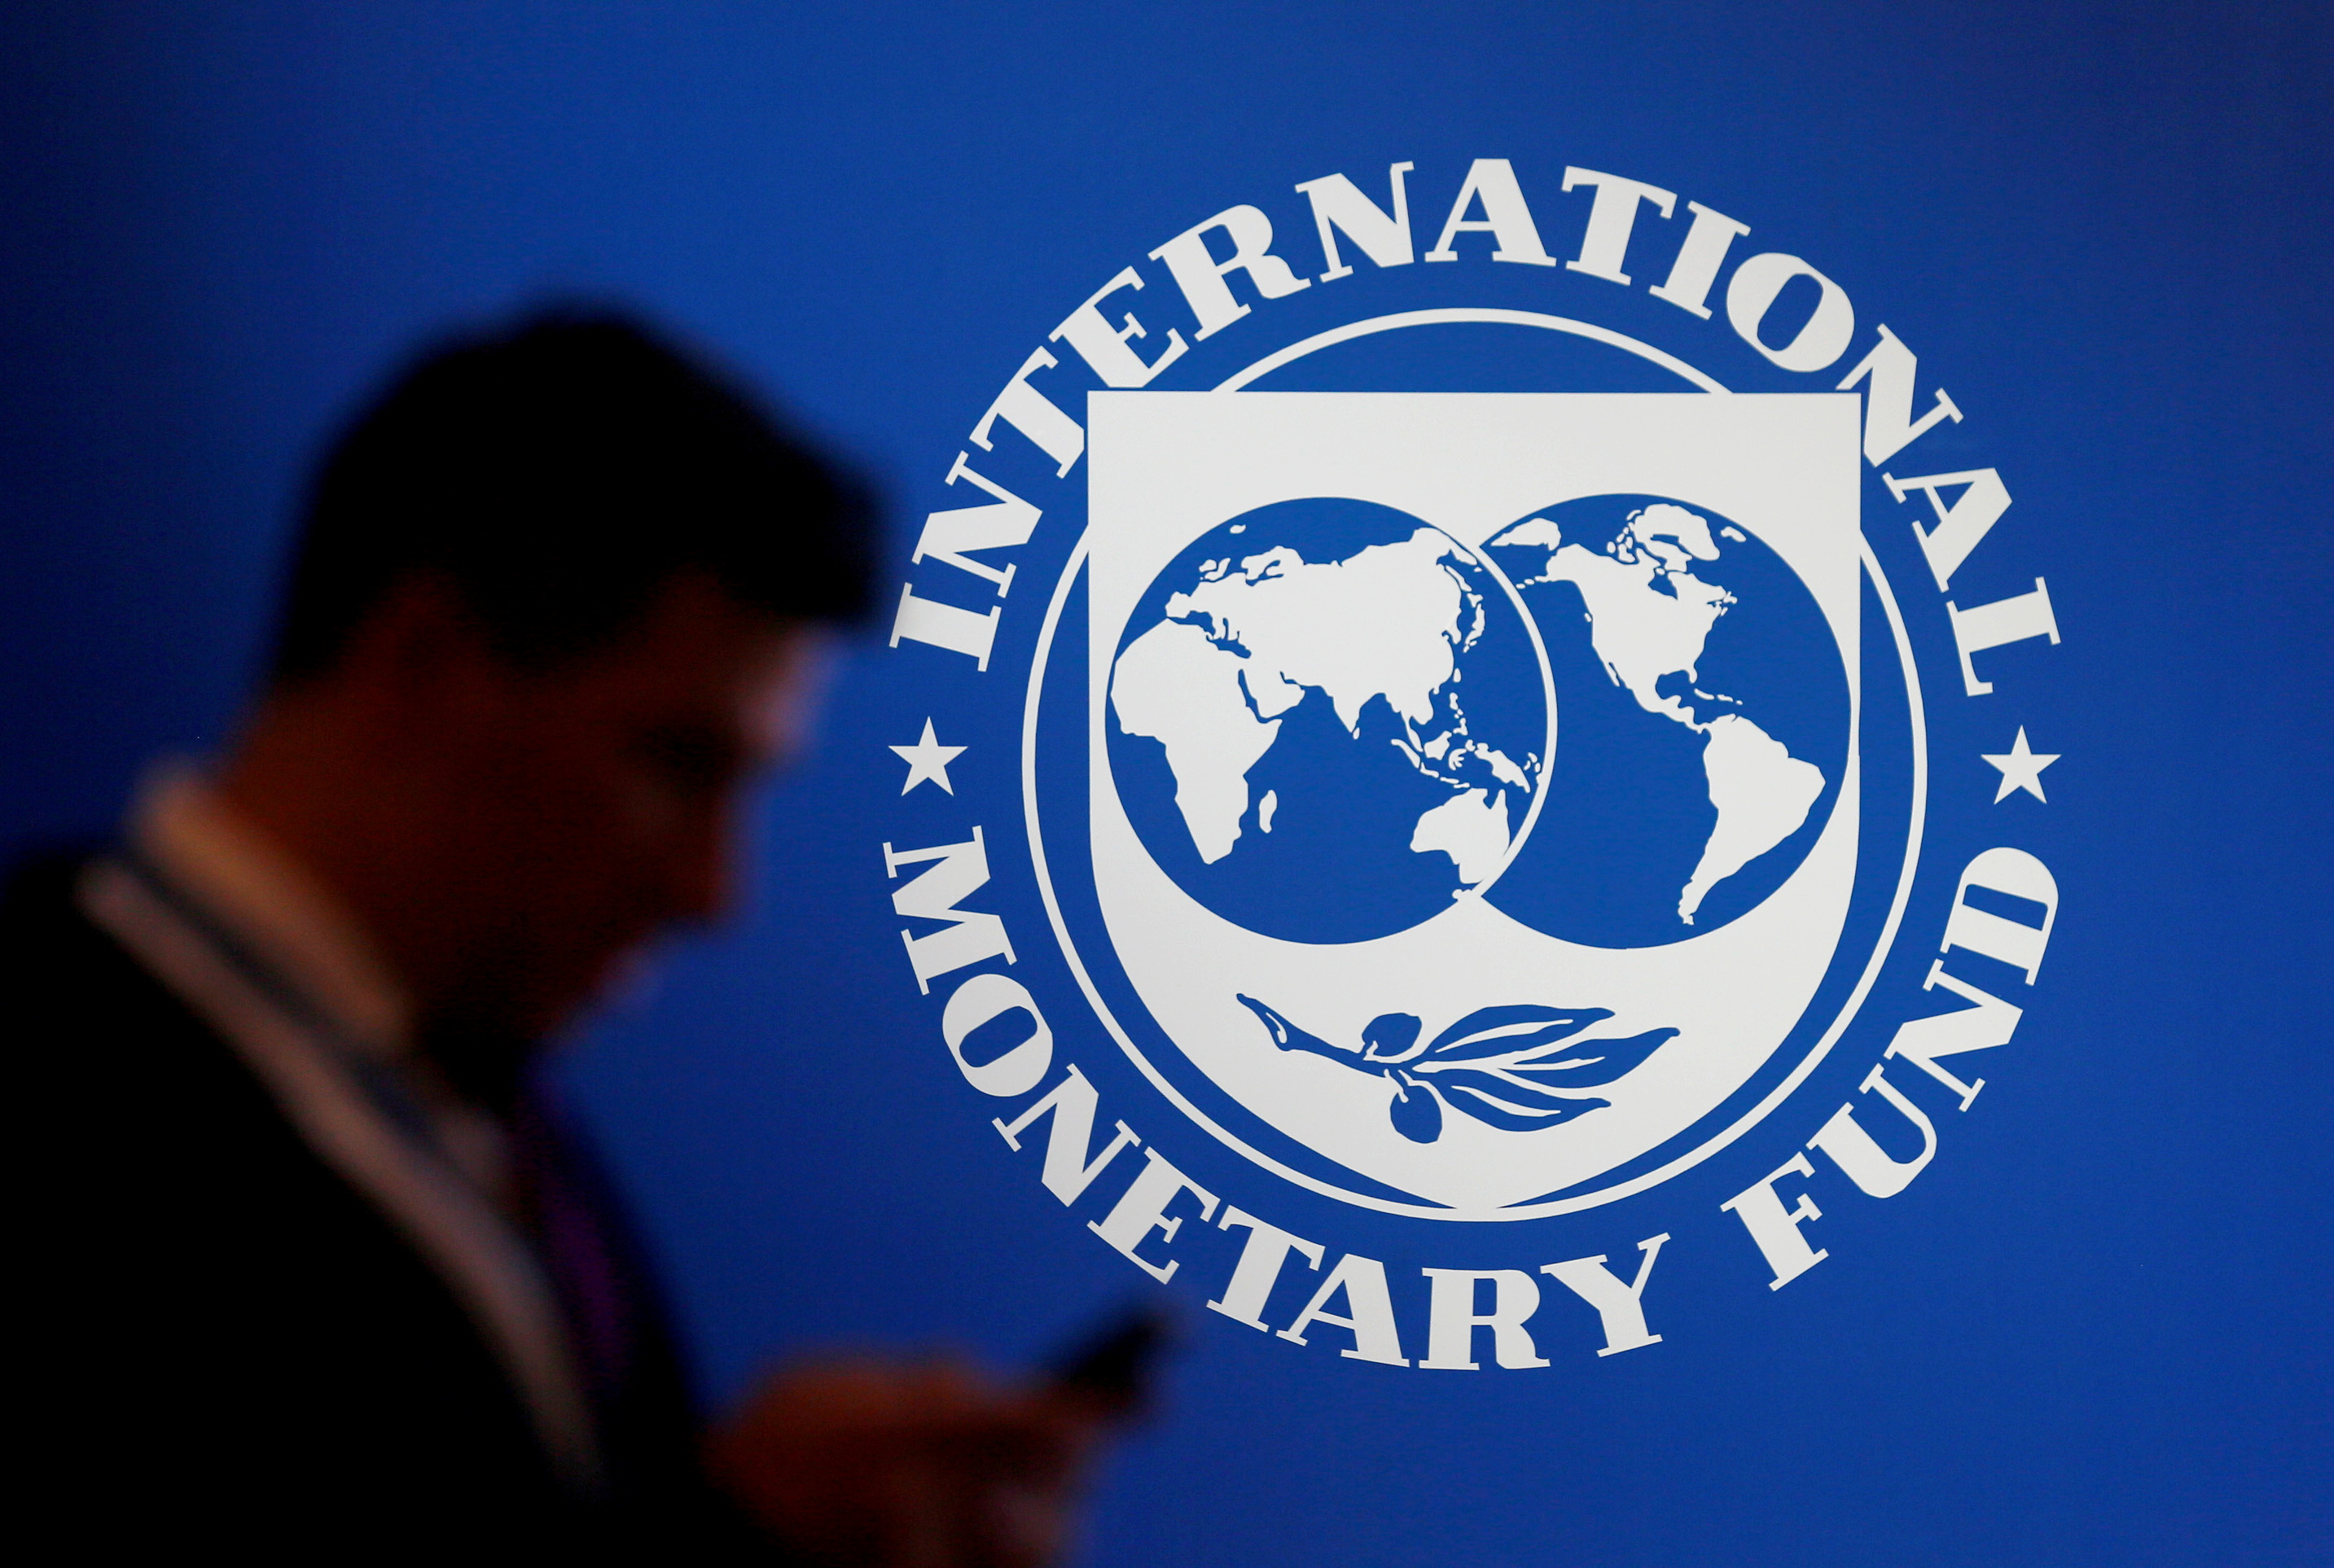 A participant stands near a logo of IMF at the International Monetary Fund - World Bank Annual Meeting 2018 in Nusa Dua, Bali, Indonesia, October 12, 2018. REUTERS/Johannes P. Christo/File Photo